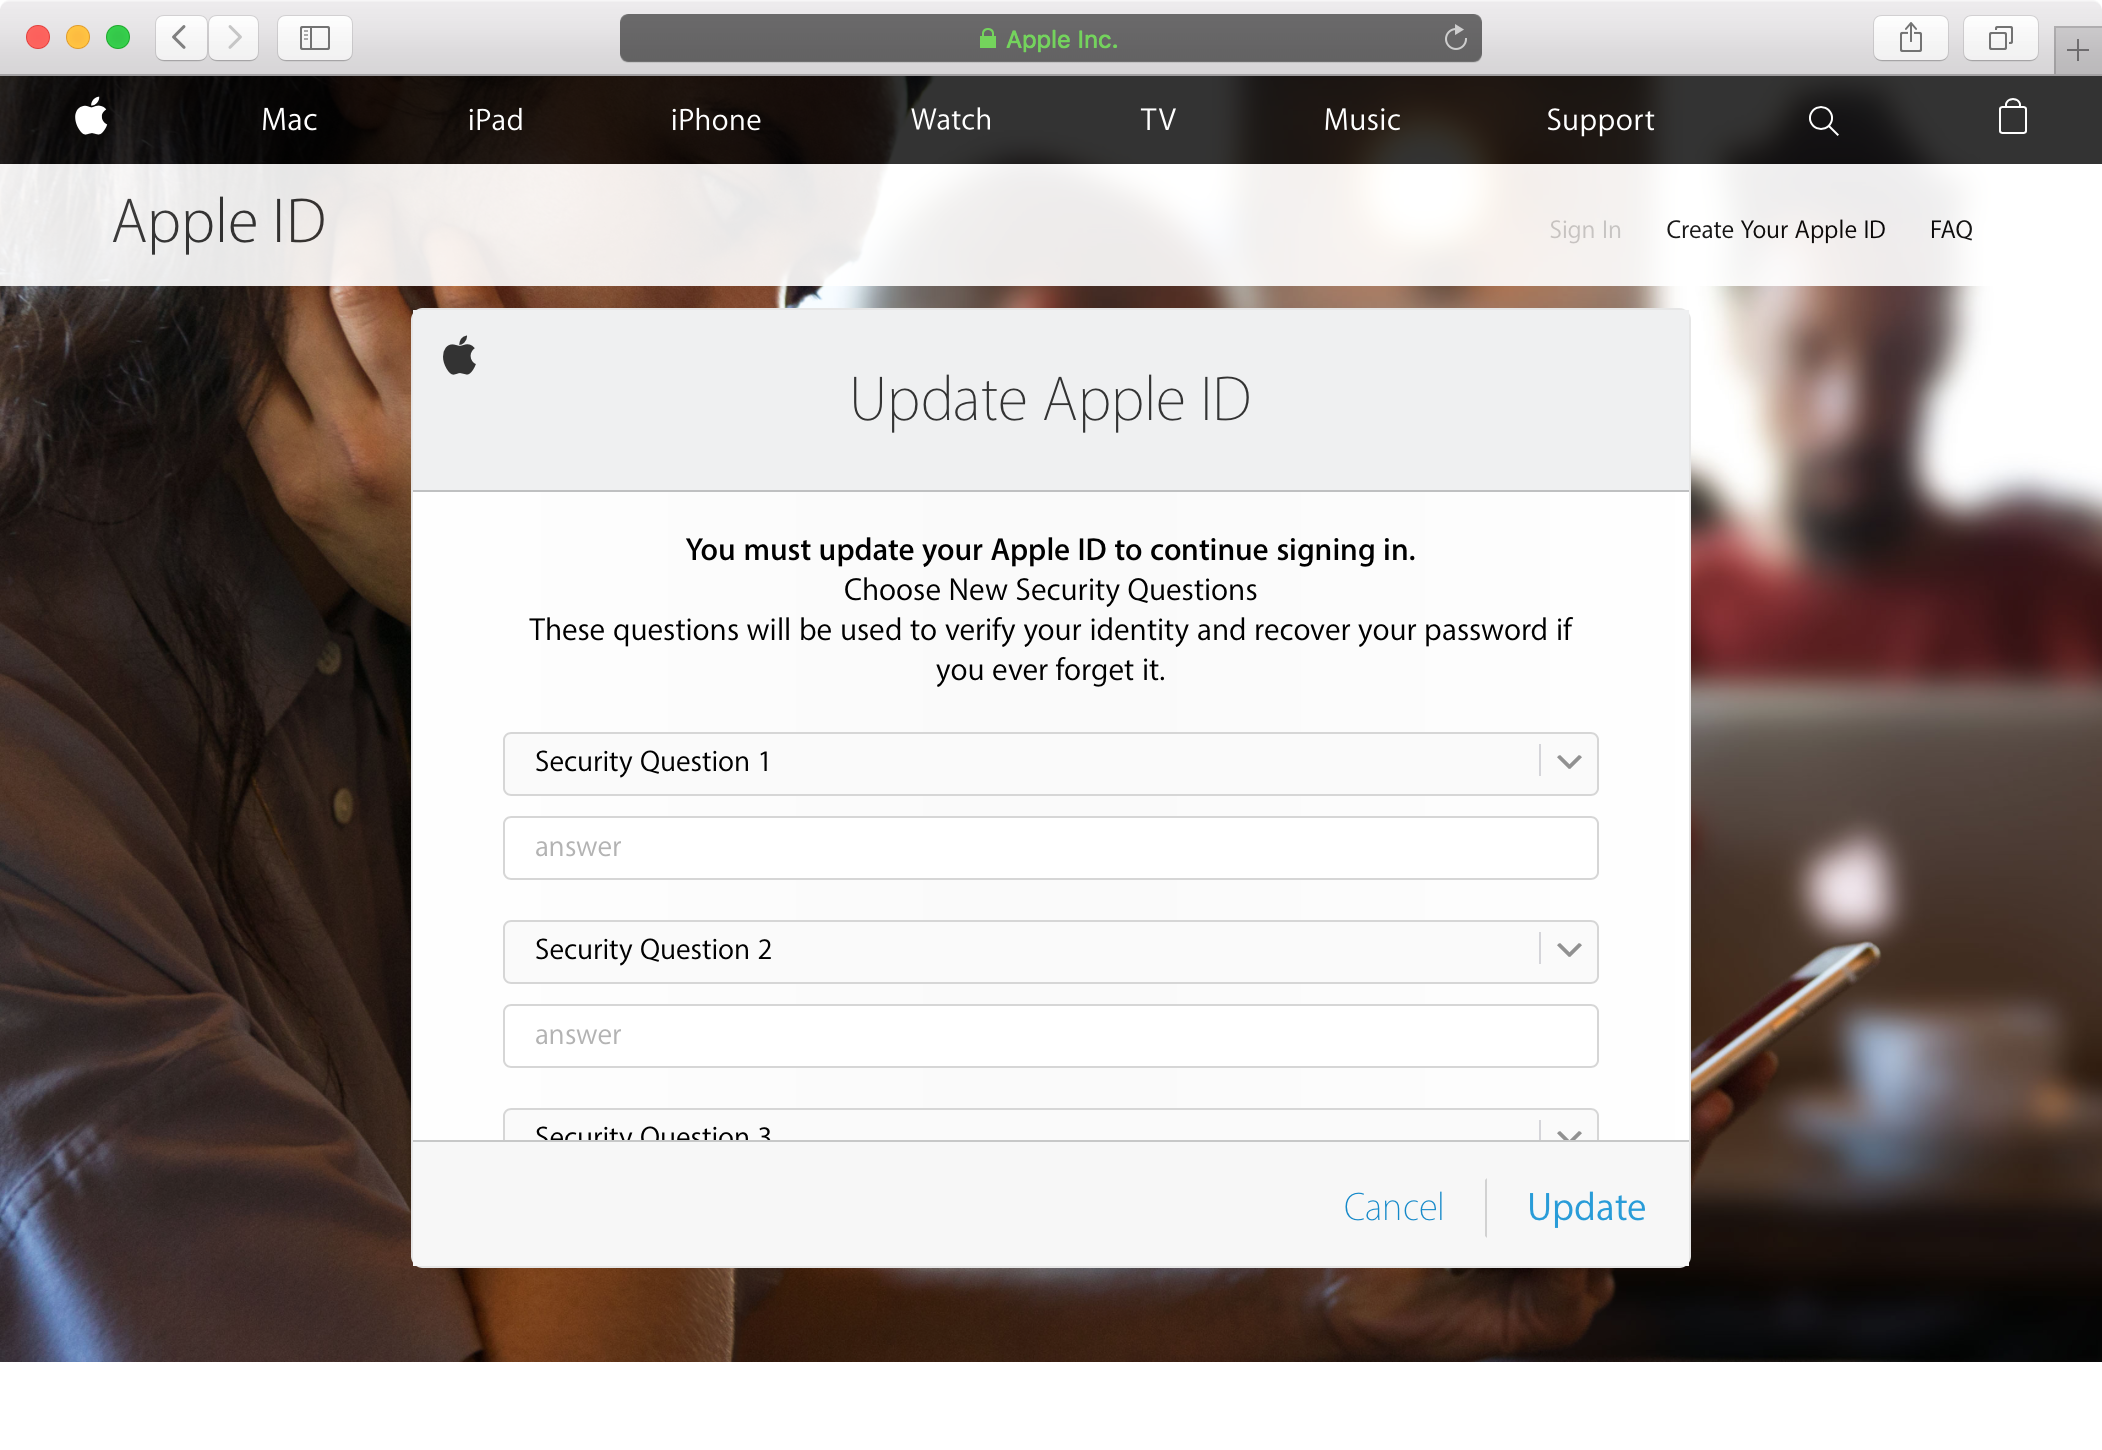 How to reset your Apple ID security questions and answers